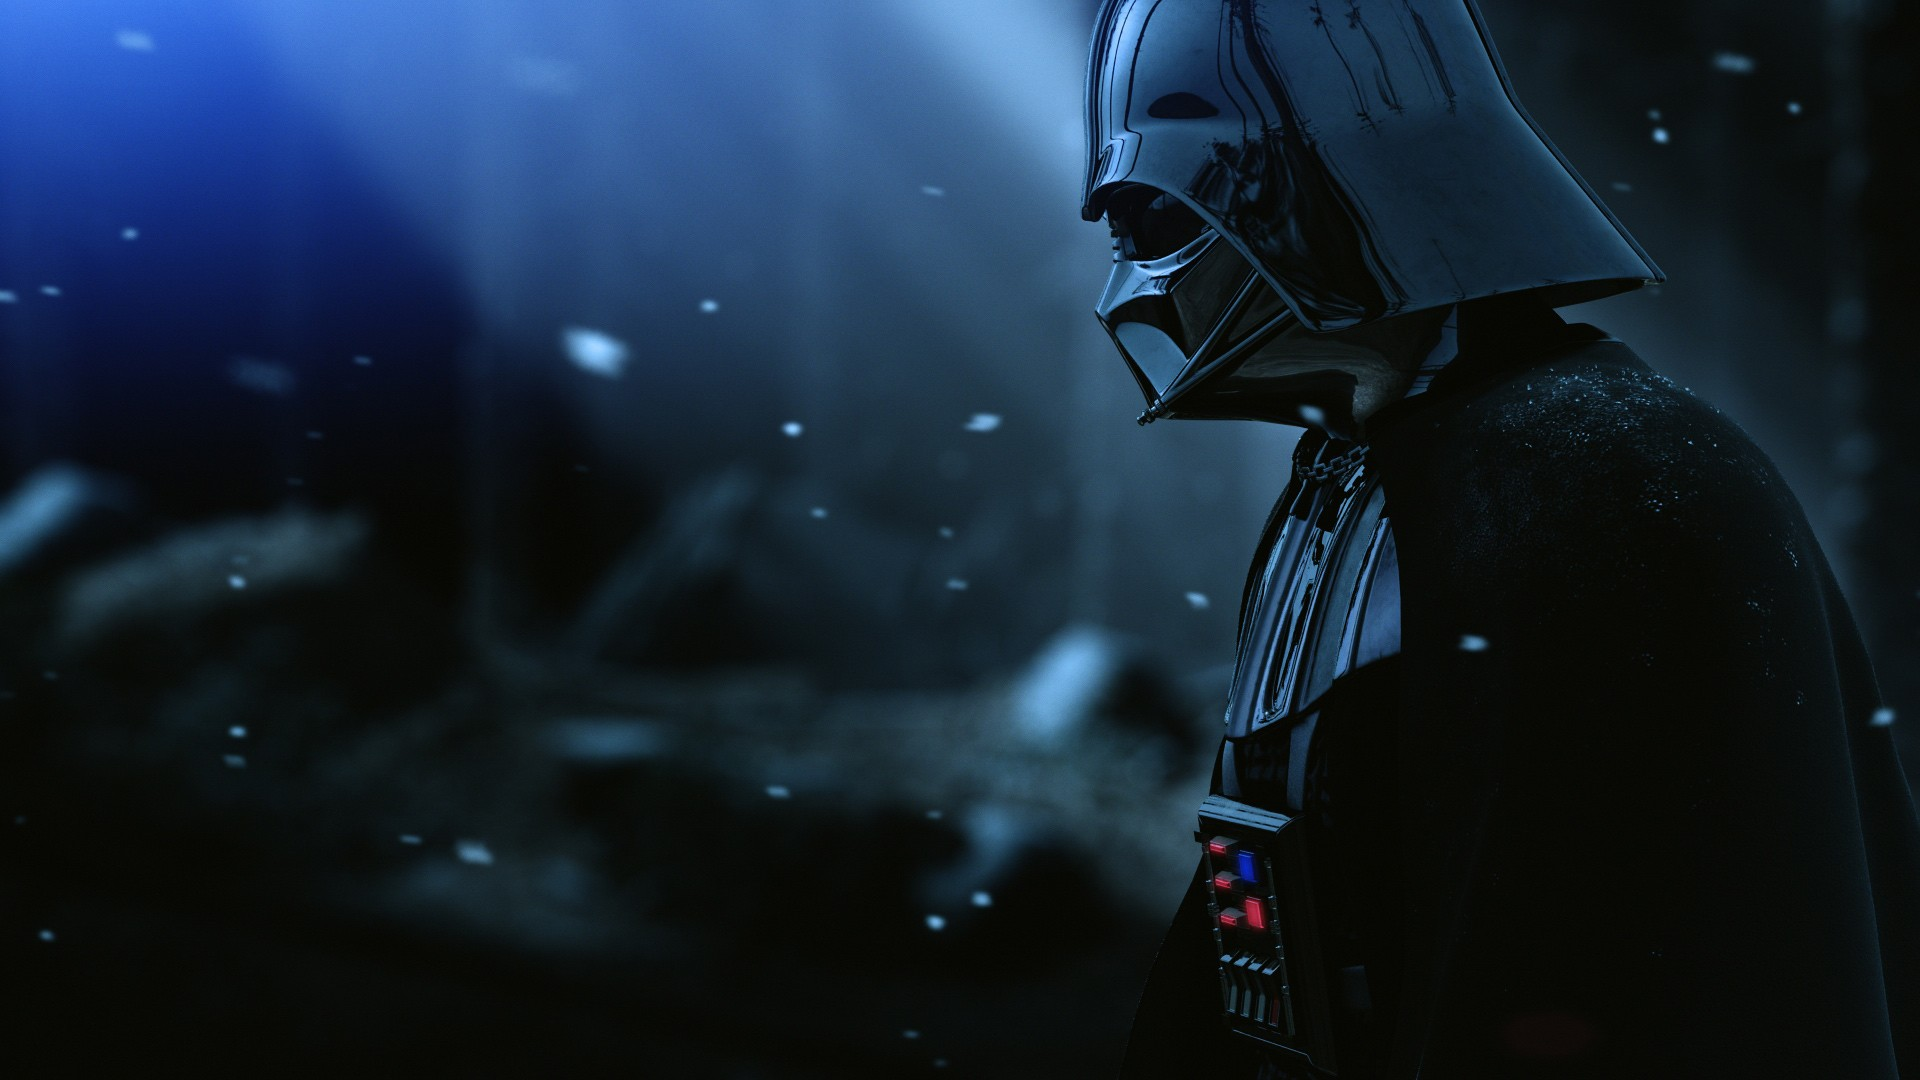 Wallpapers De Star Wars Megapost Taringa